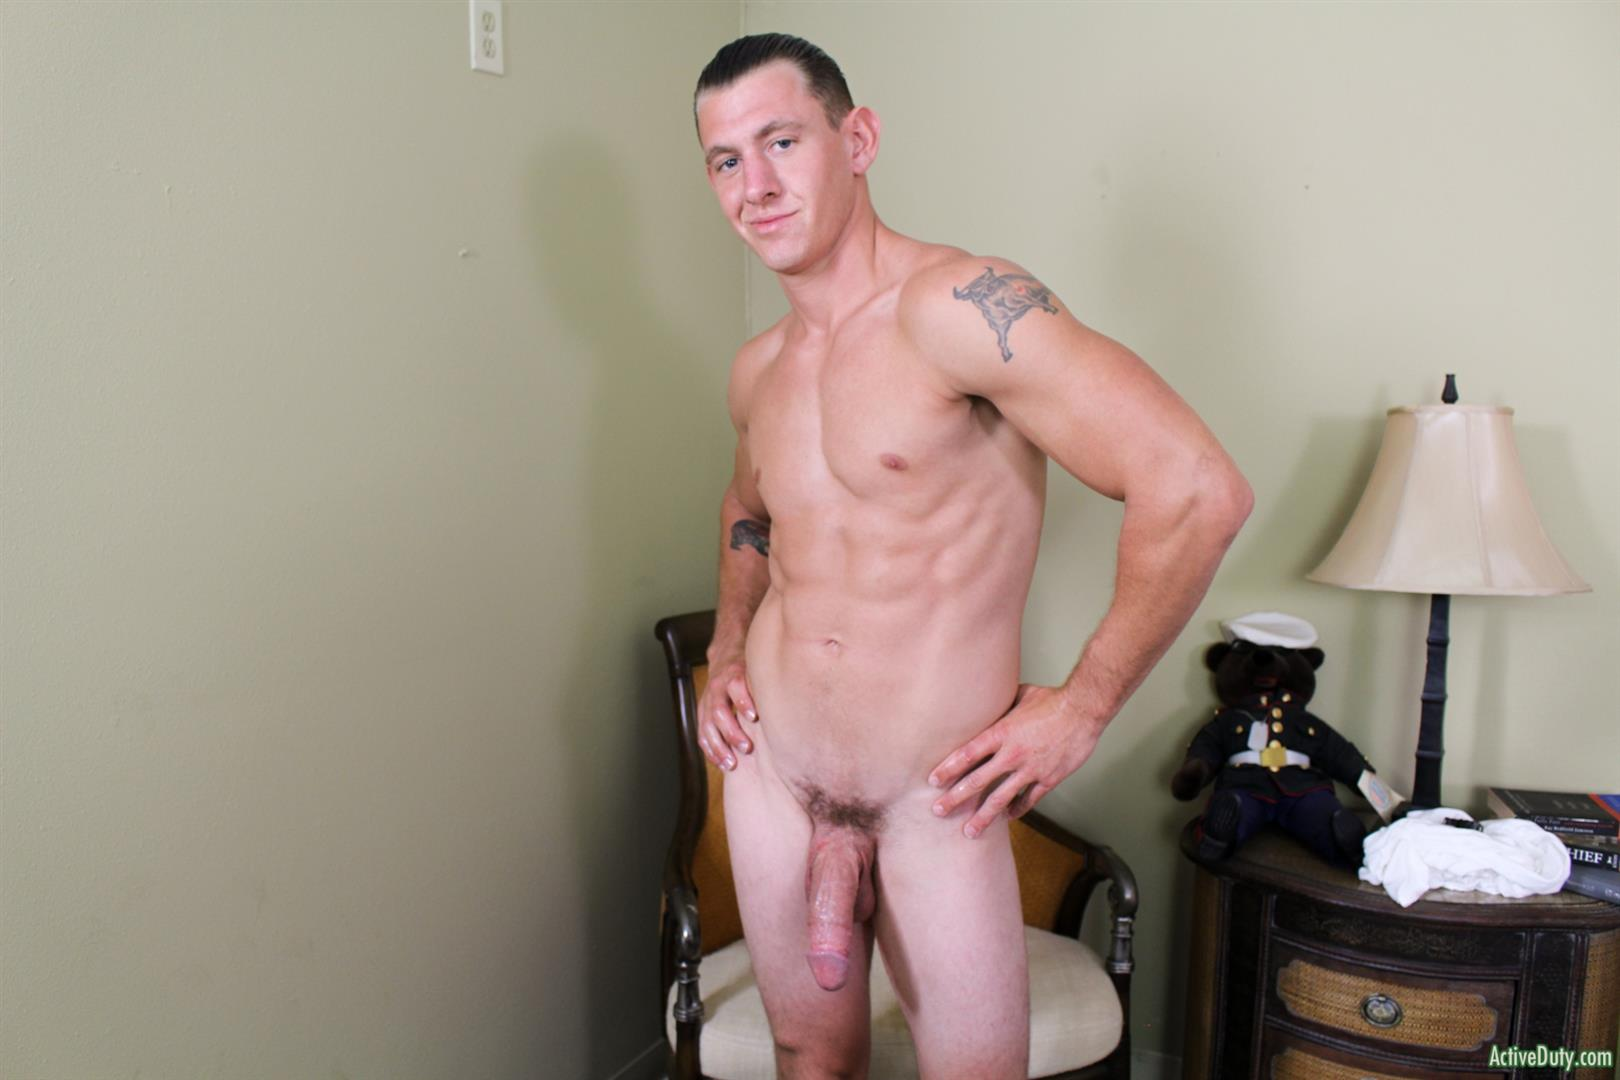 Active-Duty-Phoenix-River-Navy-Guy-With-A-Big-Cut-Cock-Jerking-Off-08 Muscular Navy Hunk Shows Off And Strokes His Huge Horse Cock